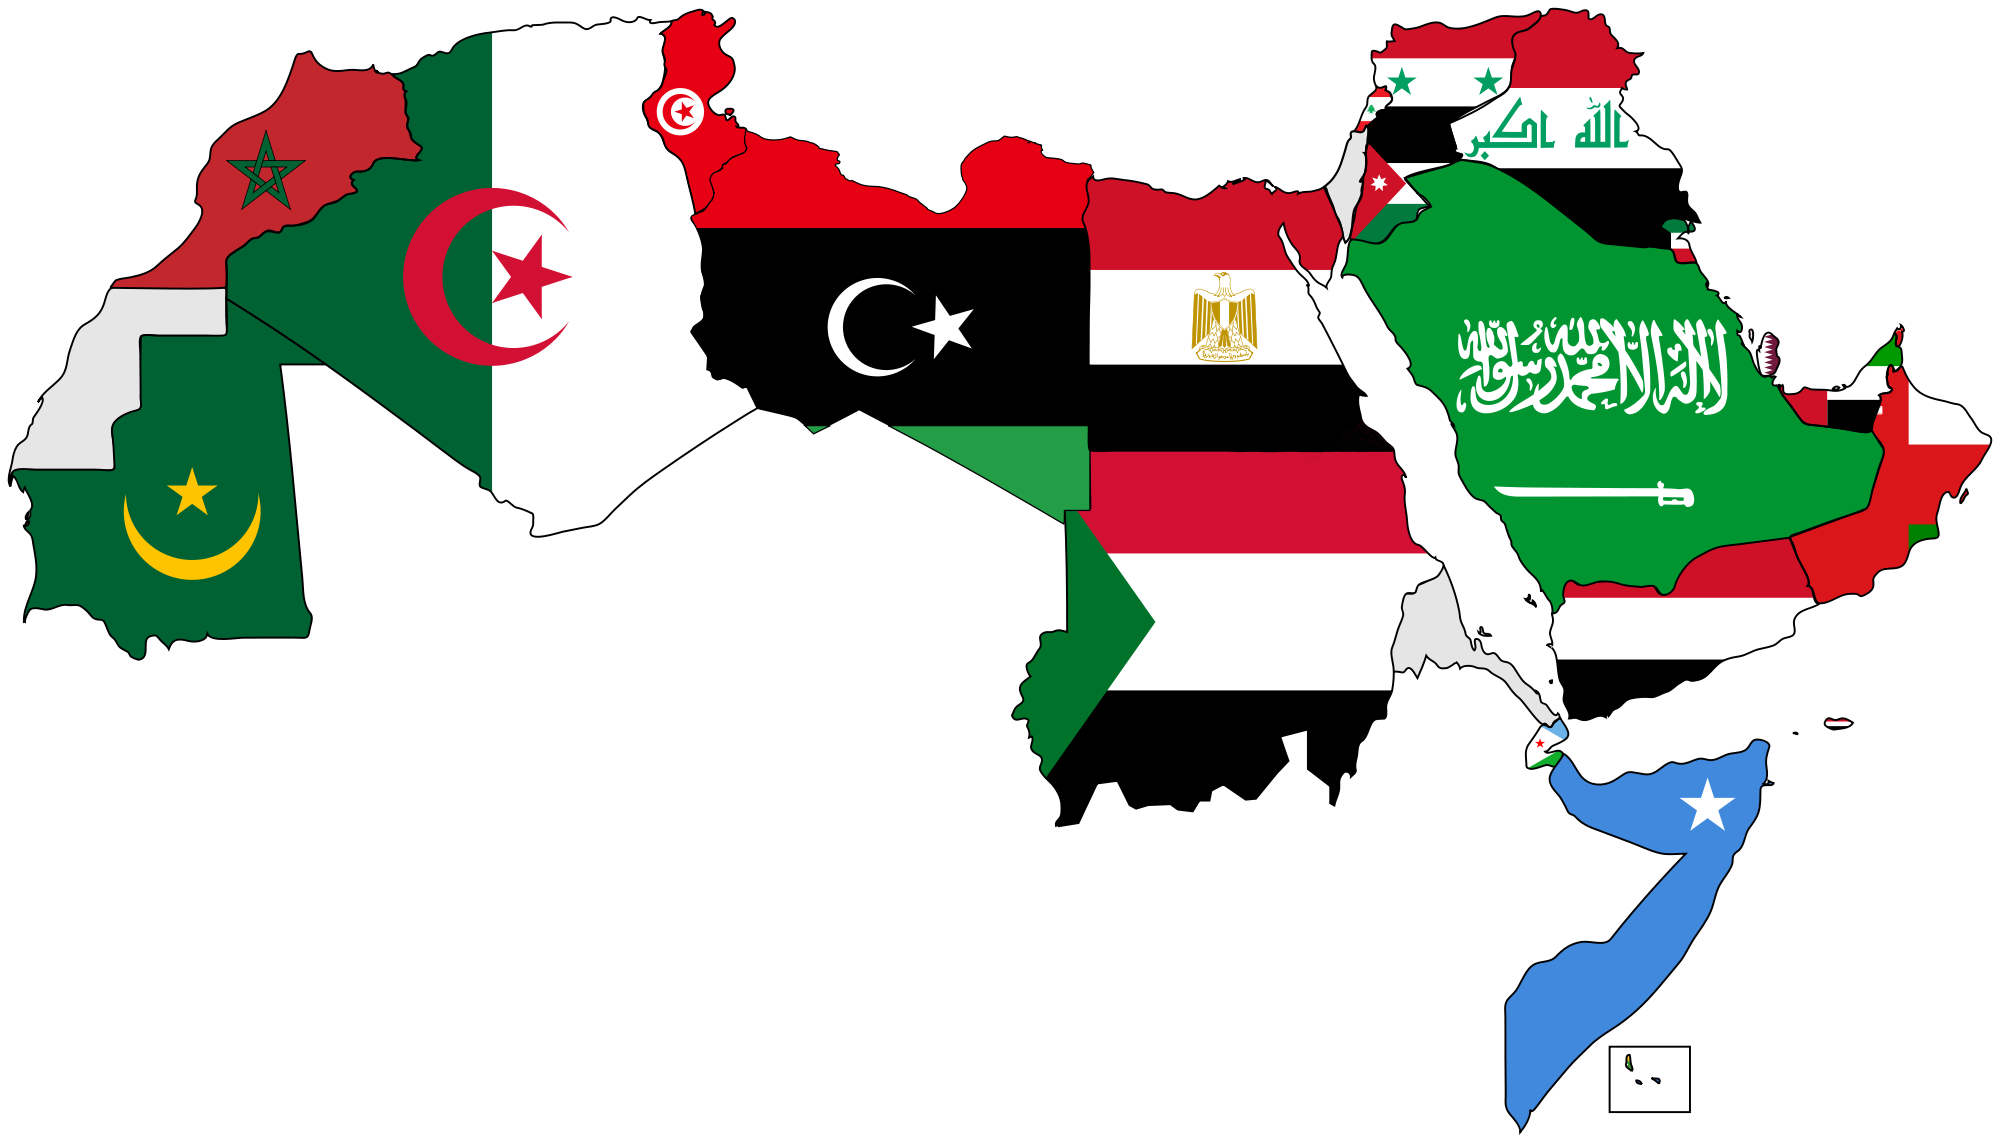 filea map of the arab world with flagspng. filea map of the arab world with flagspng  wikimedia commons